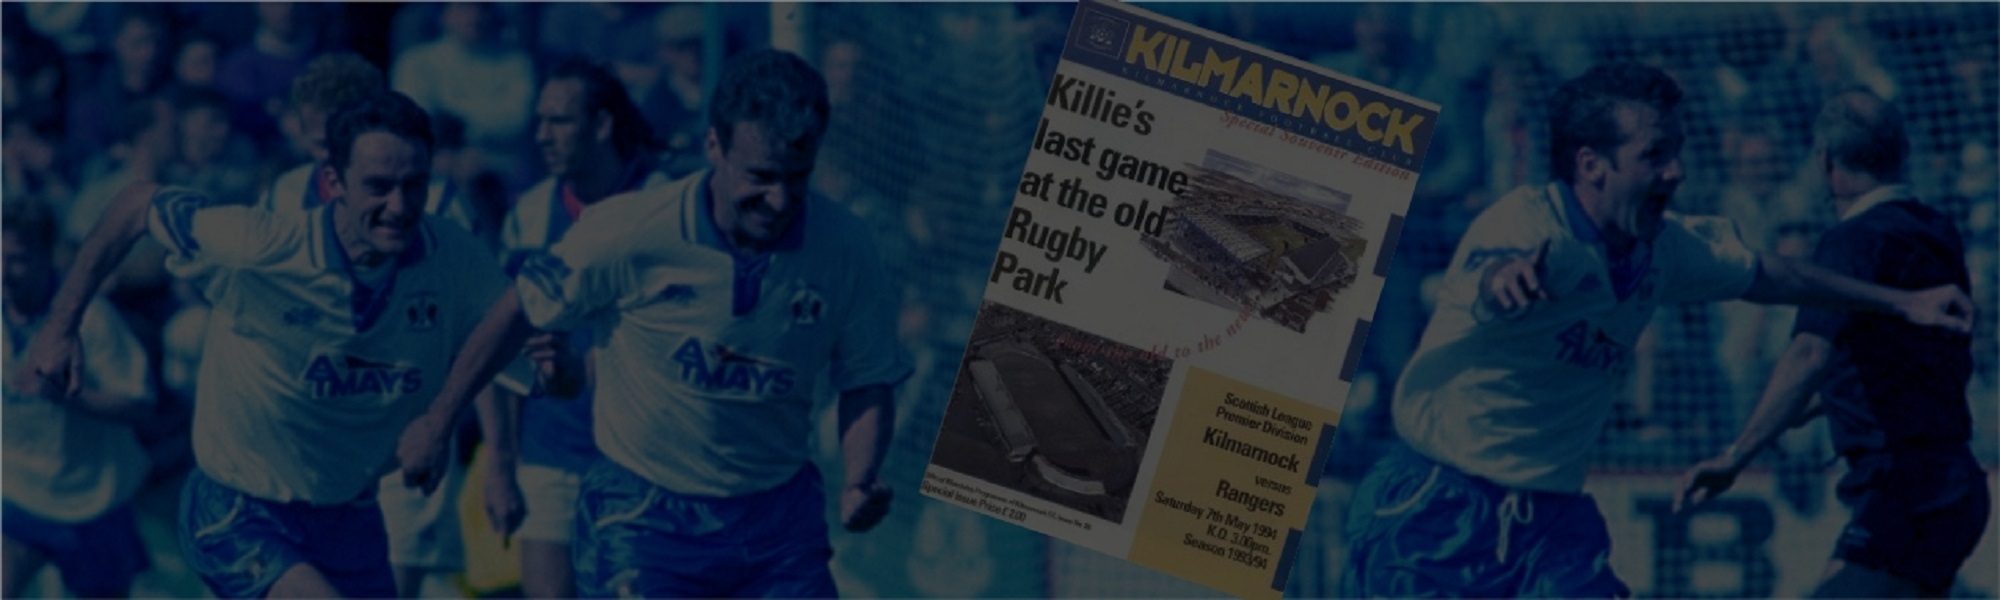 Killie 1-0 Rangers